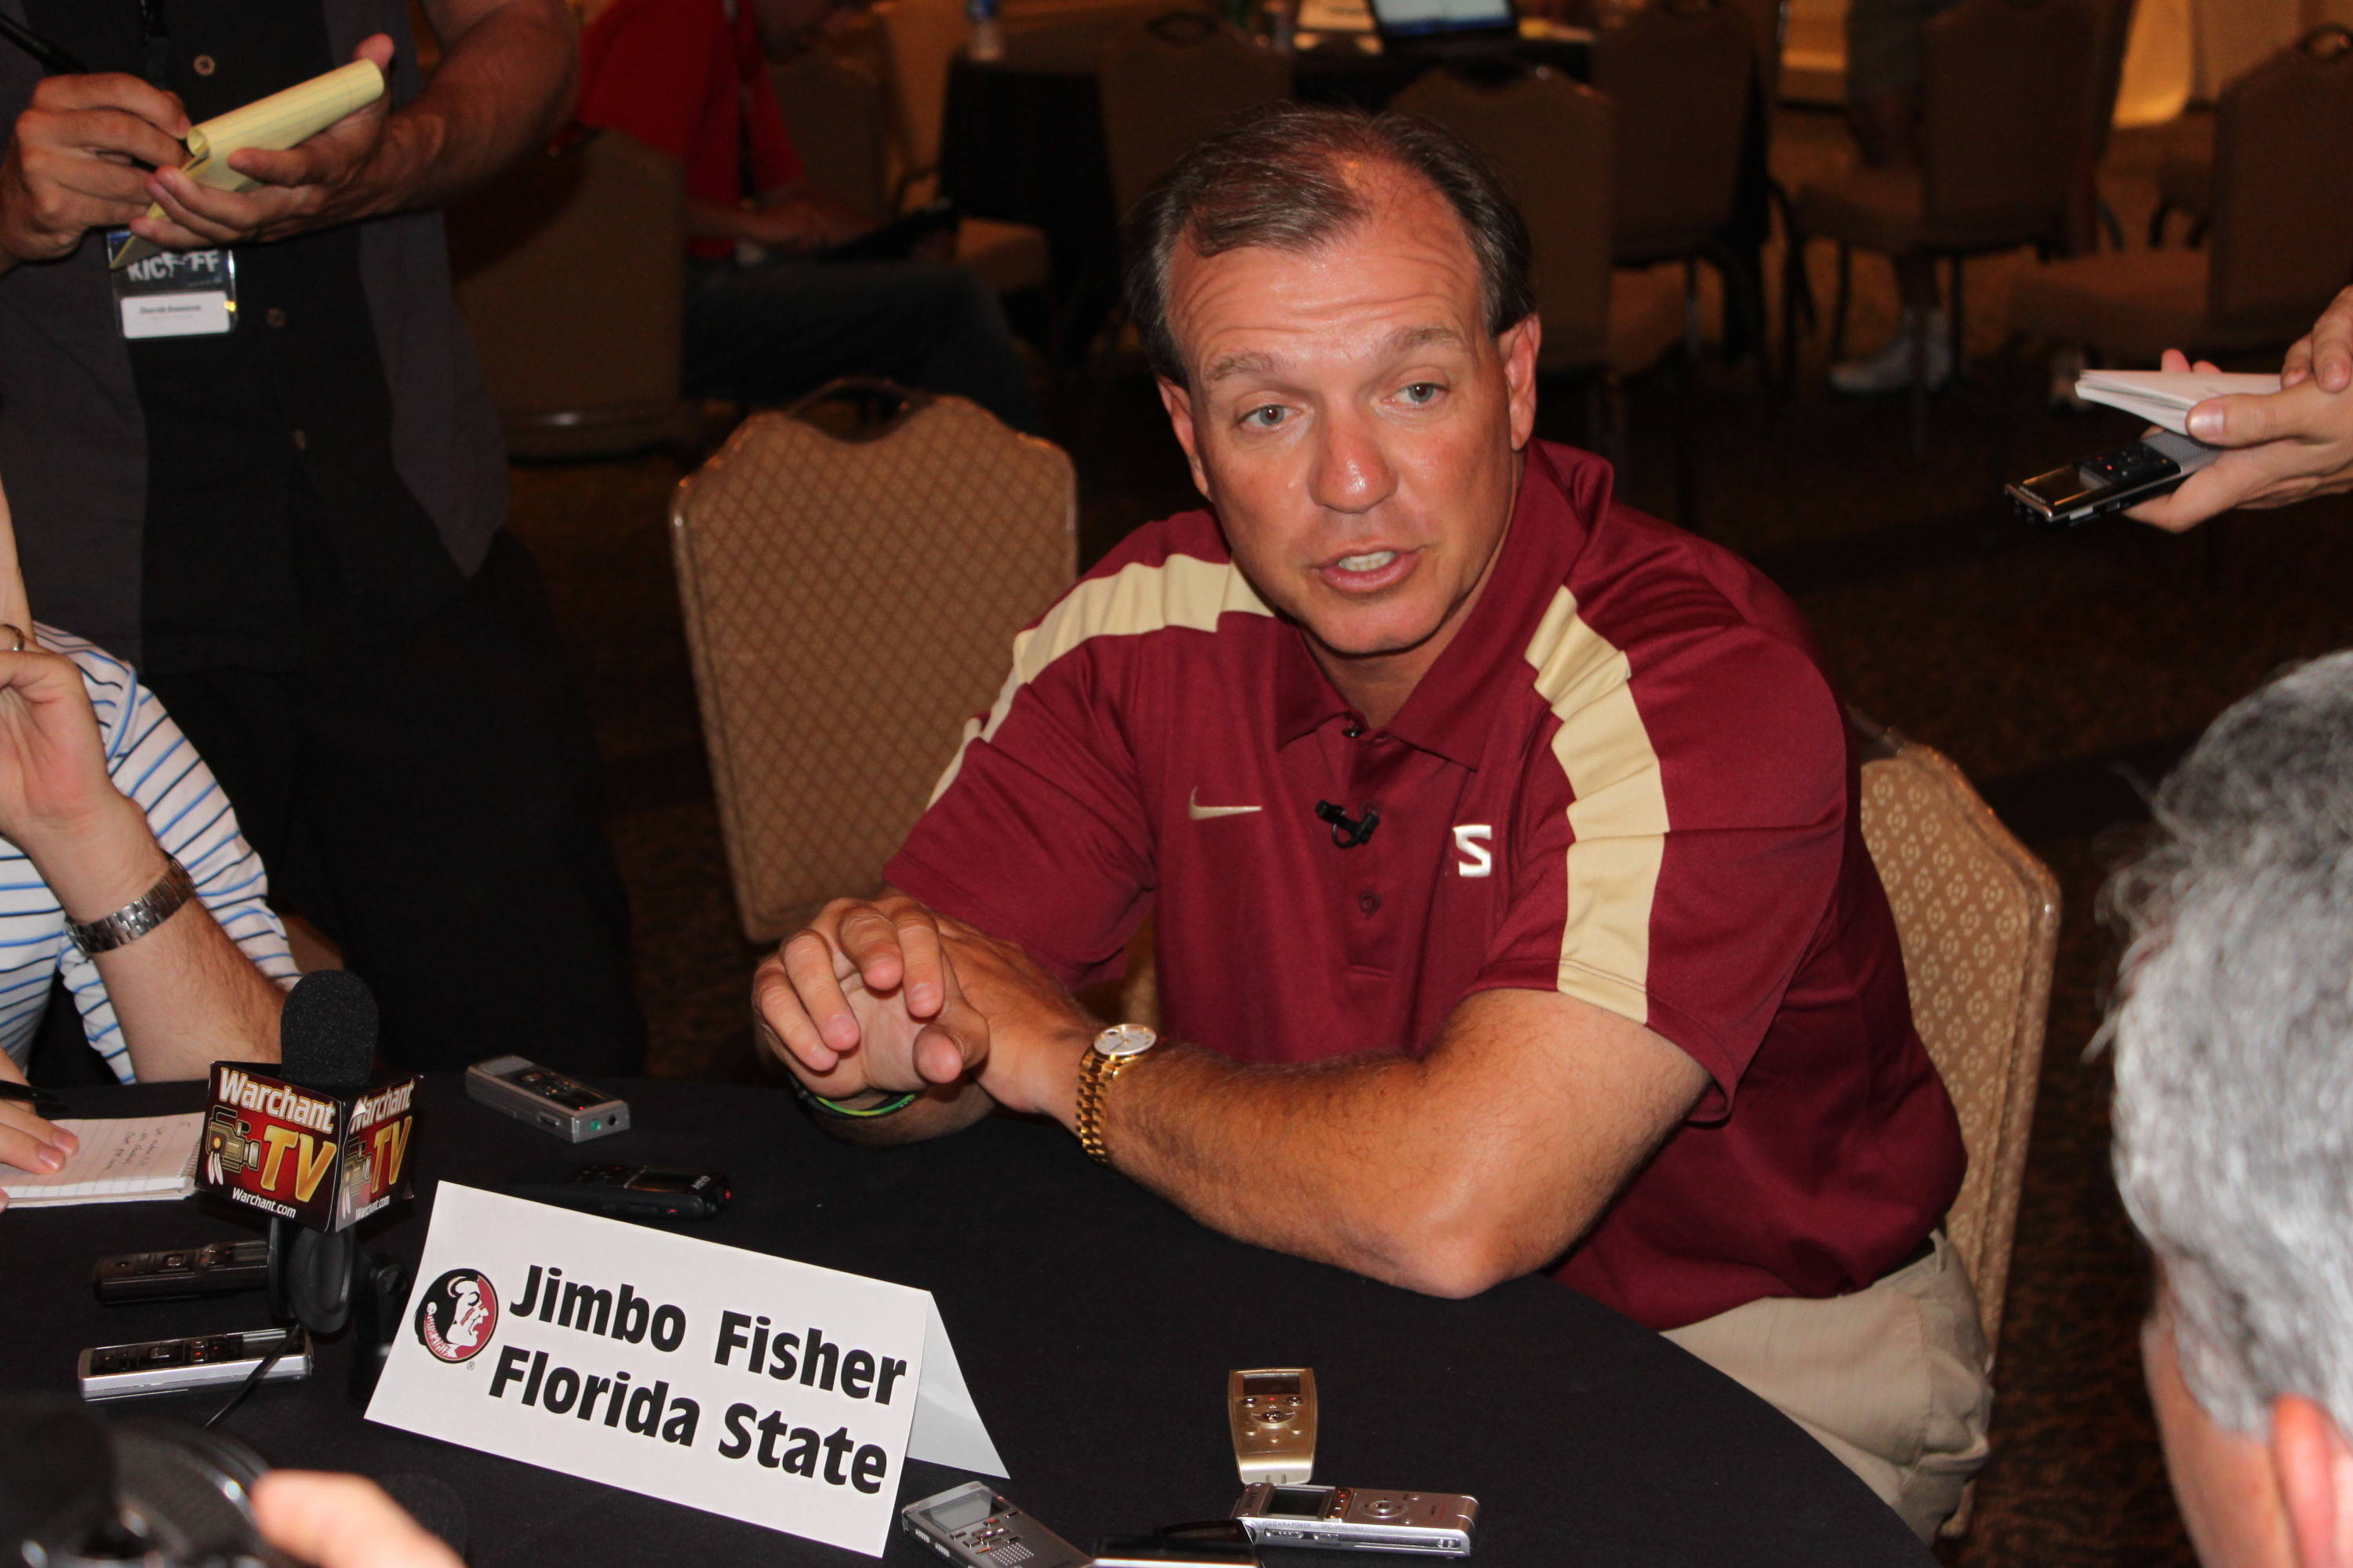 Jimbo Fisher with the print media